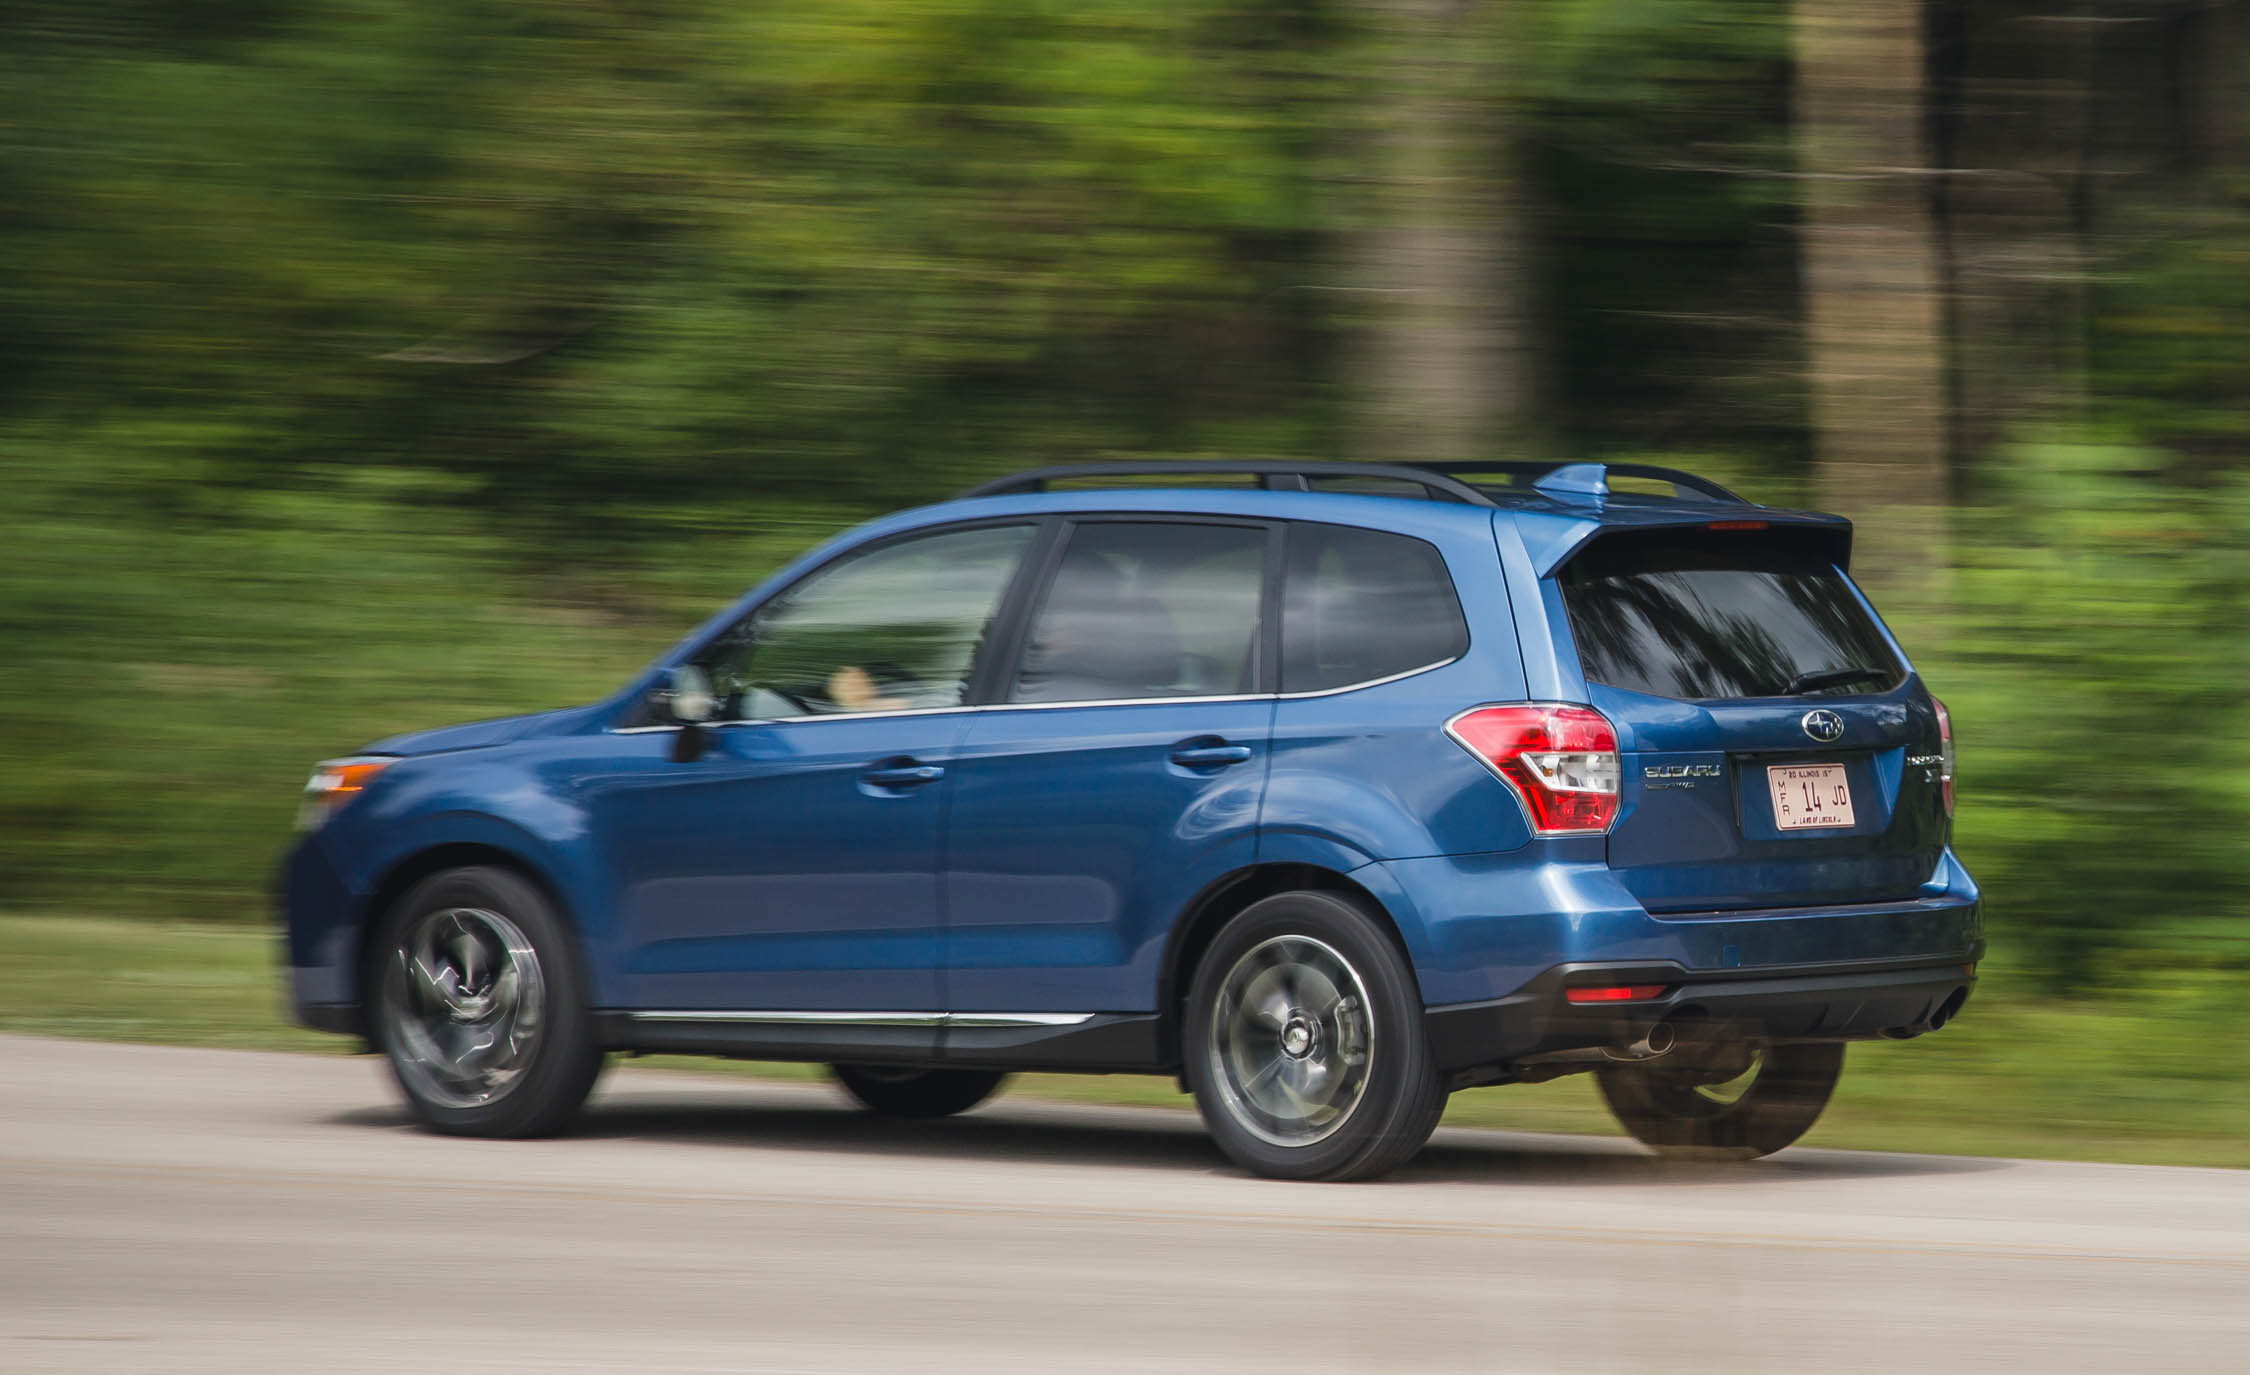 2016 Subaru Forester 2 0xt Touring Test Rear And Side View (View 19 of 29)